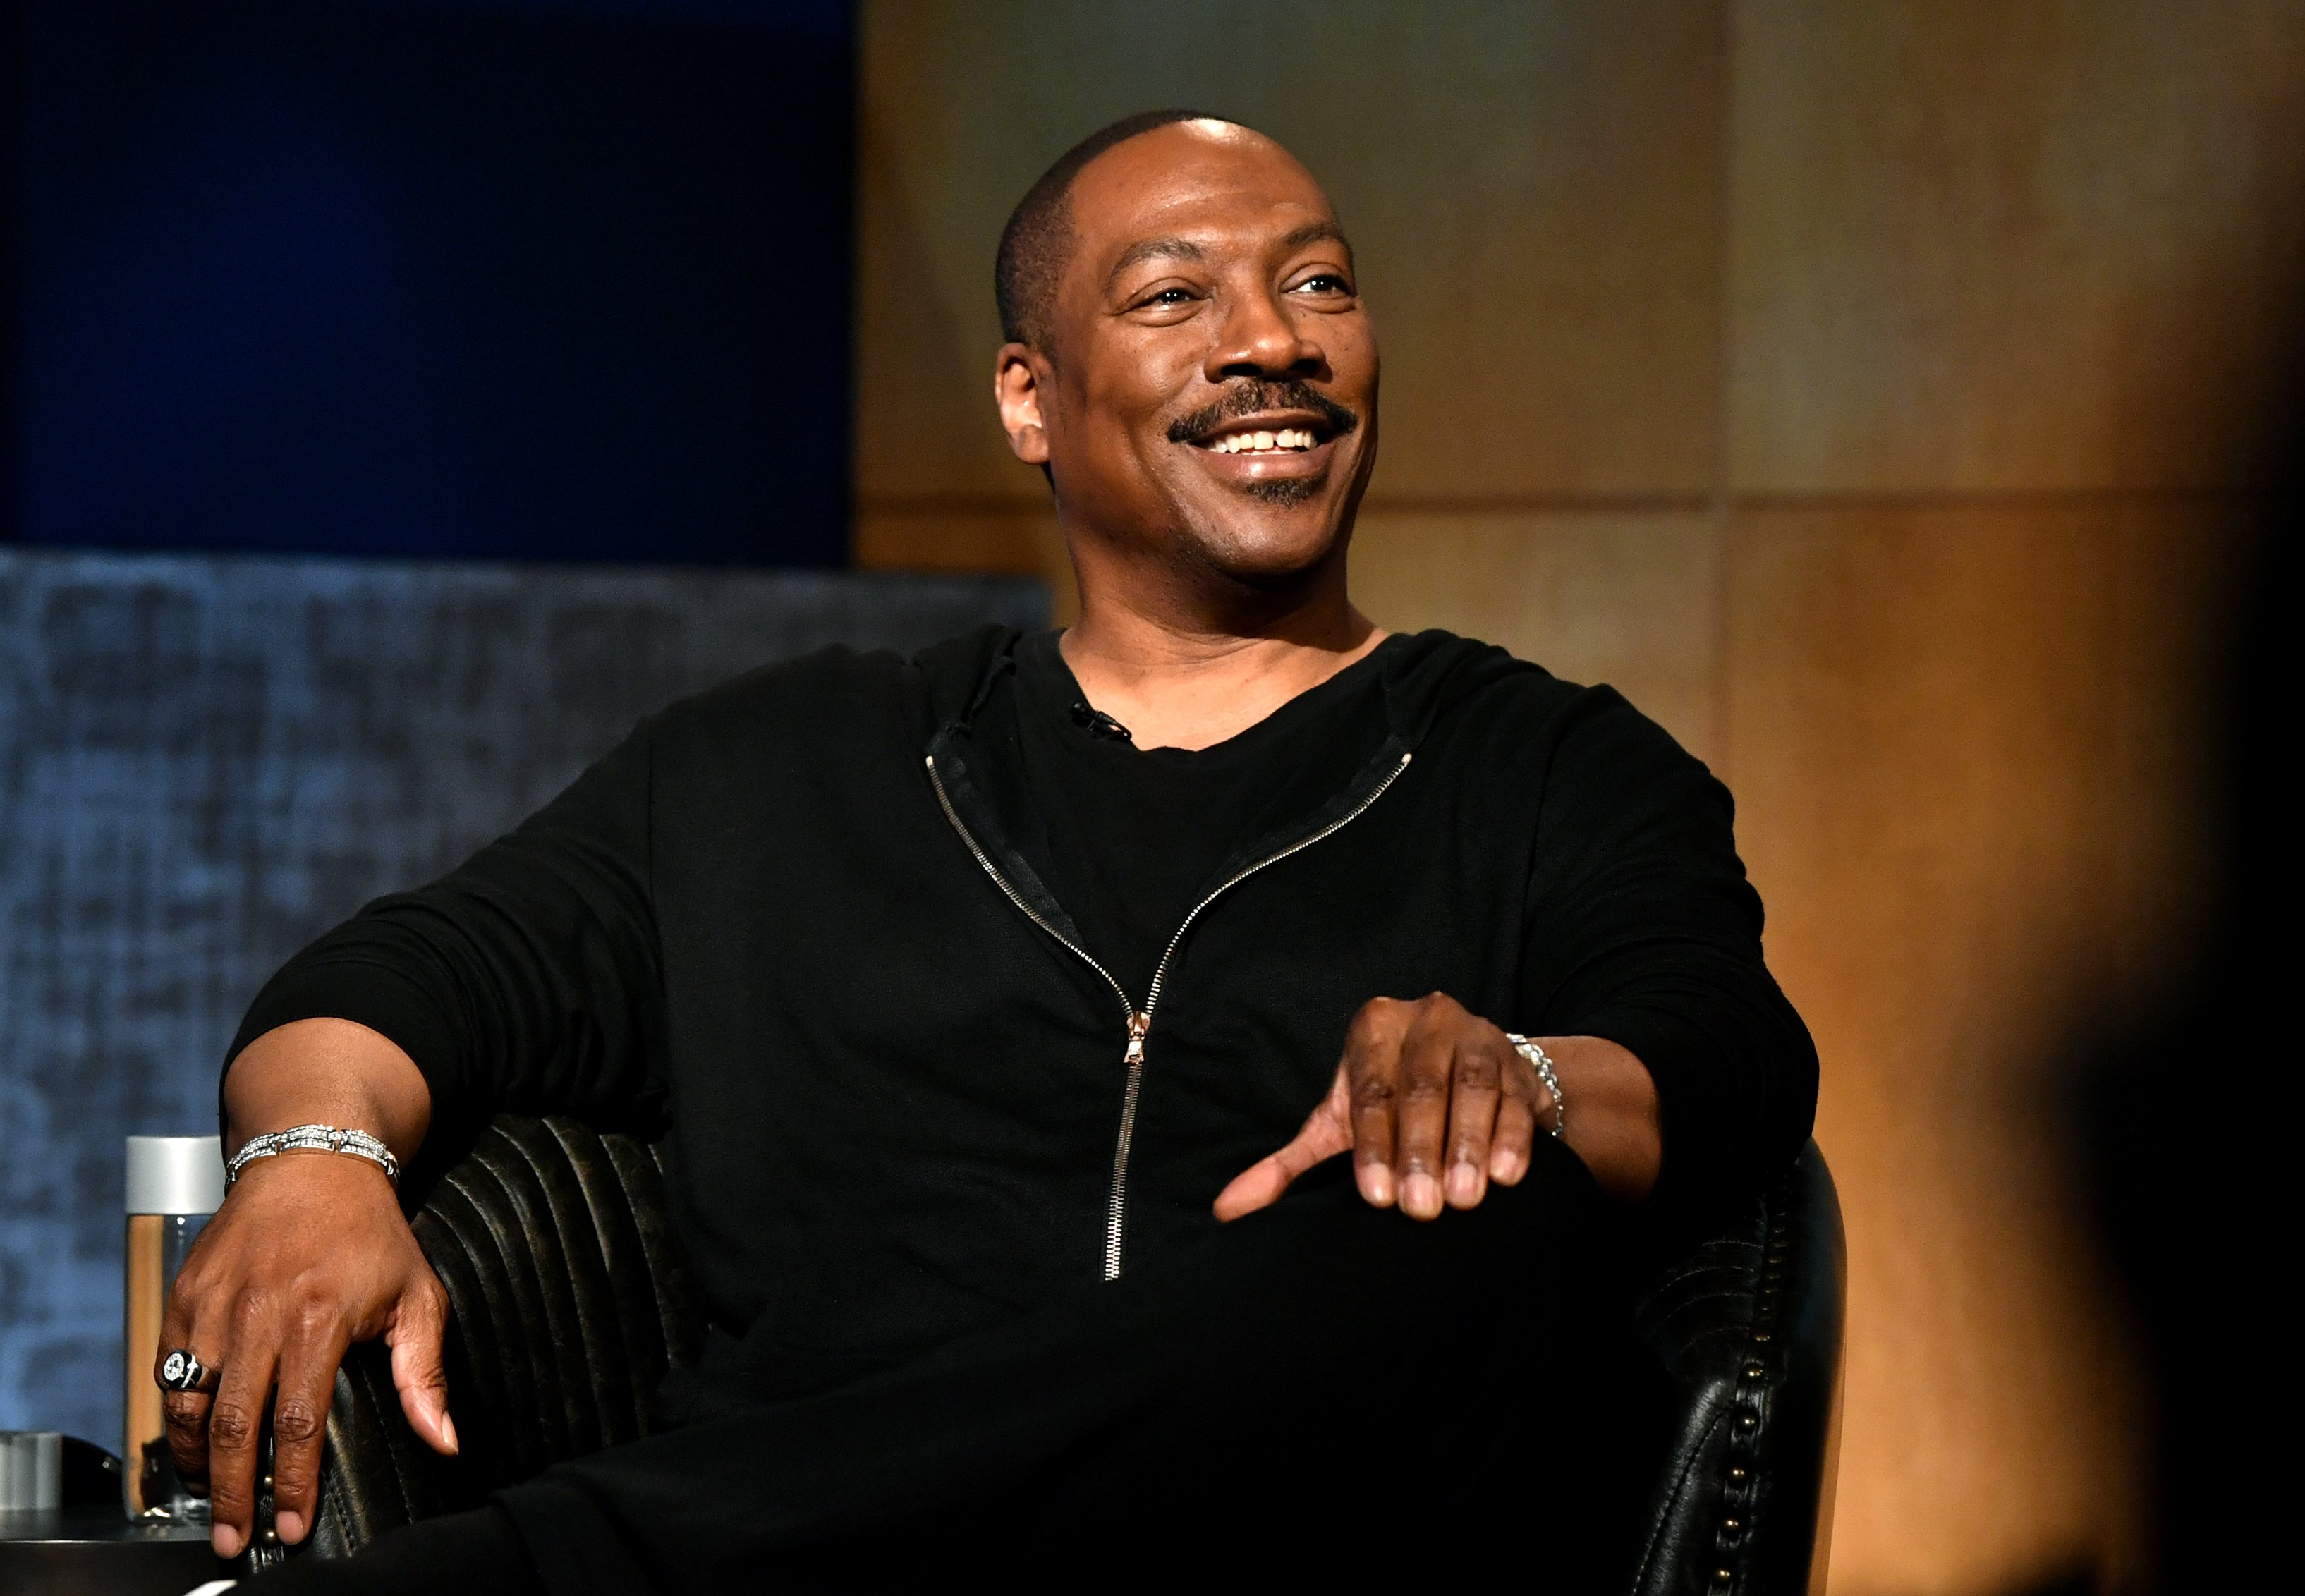 Eddie Murphy speaks onstage during the LA Tastemaker event for Comedians in Cars at The Paley Center for Media | Photo: Getty Images